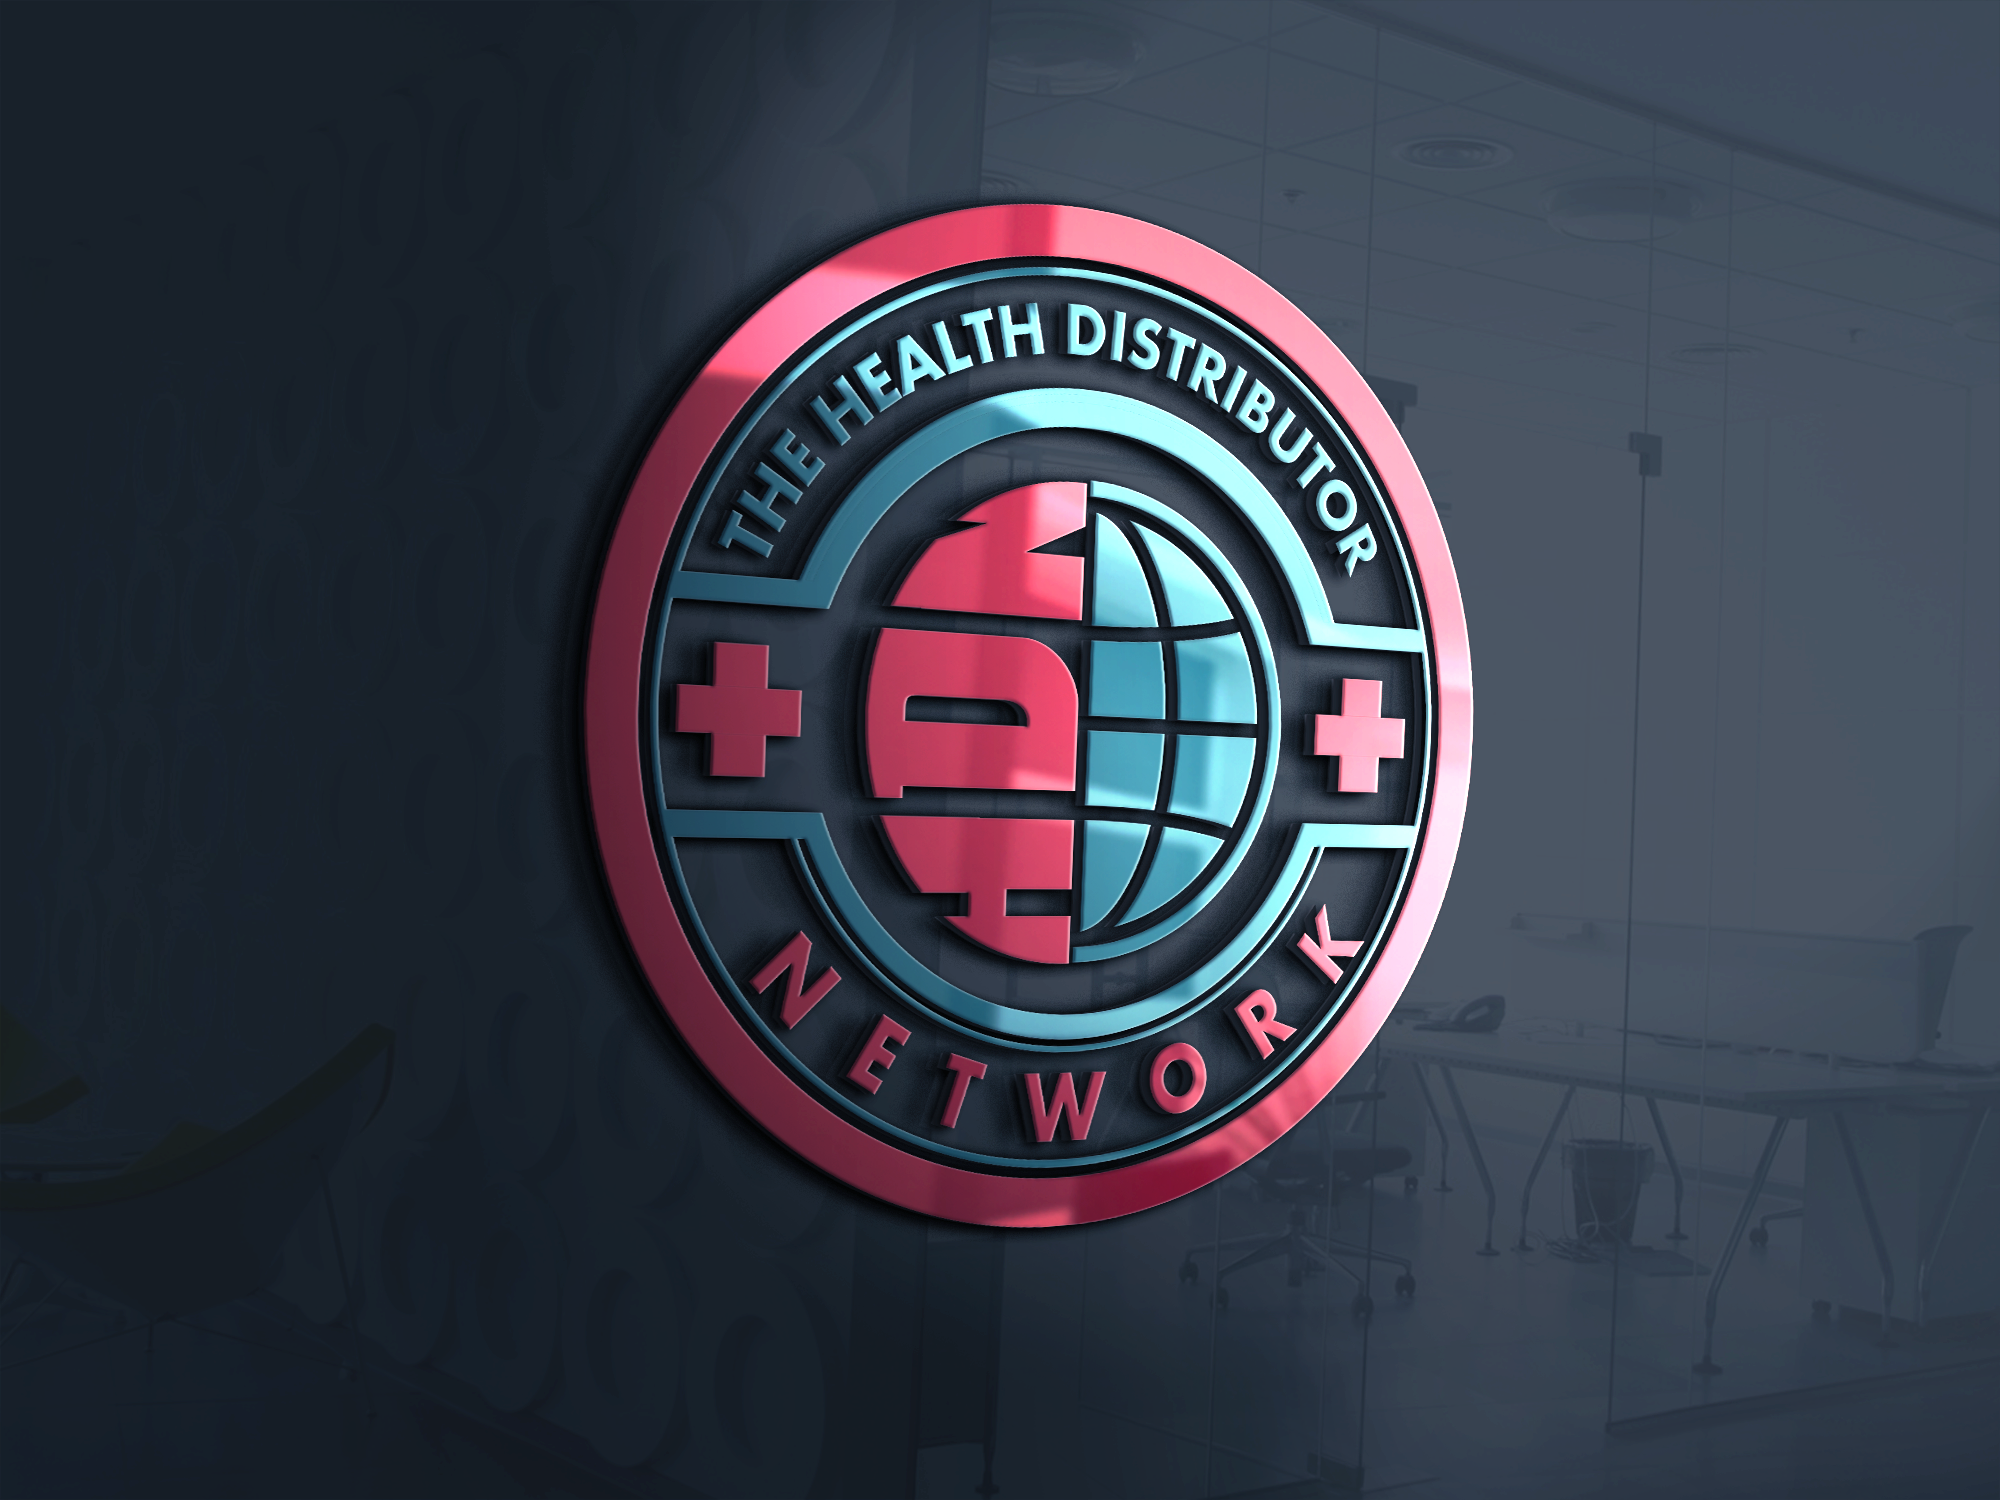 The Health Distributor Network